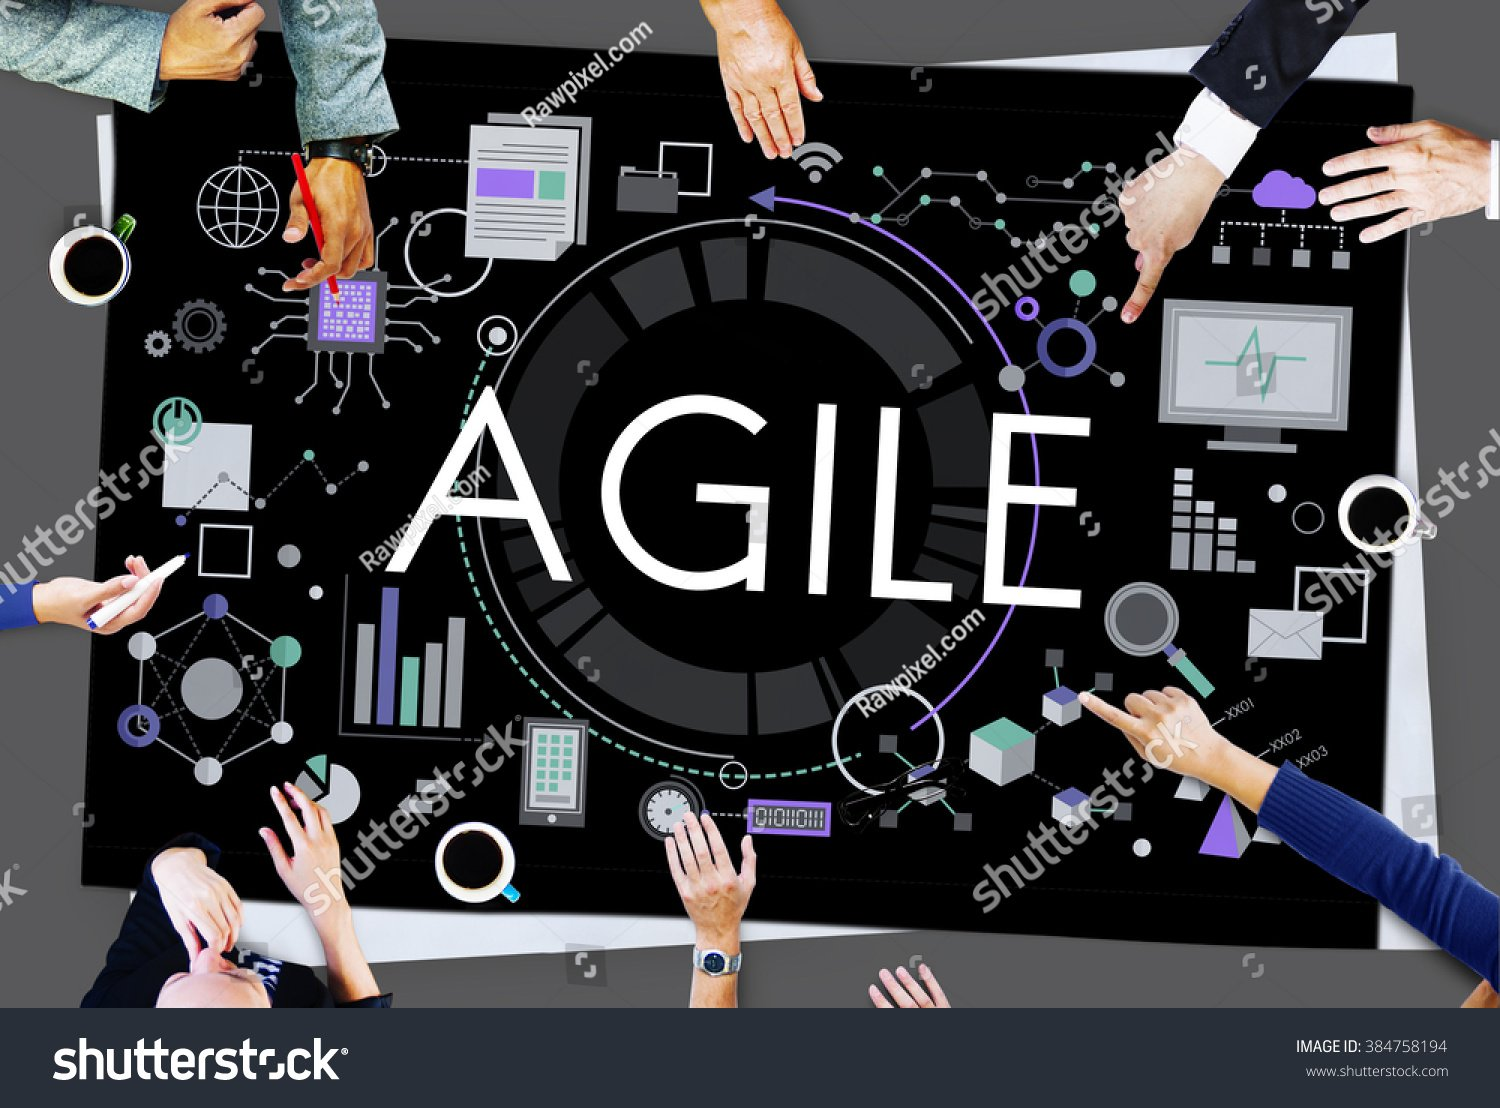 6 Myths About Agile